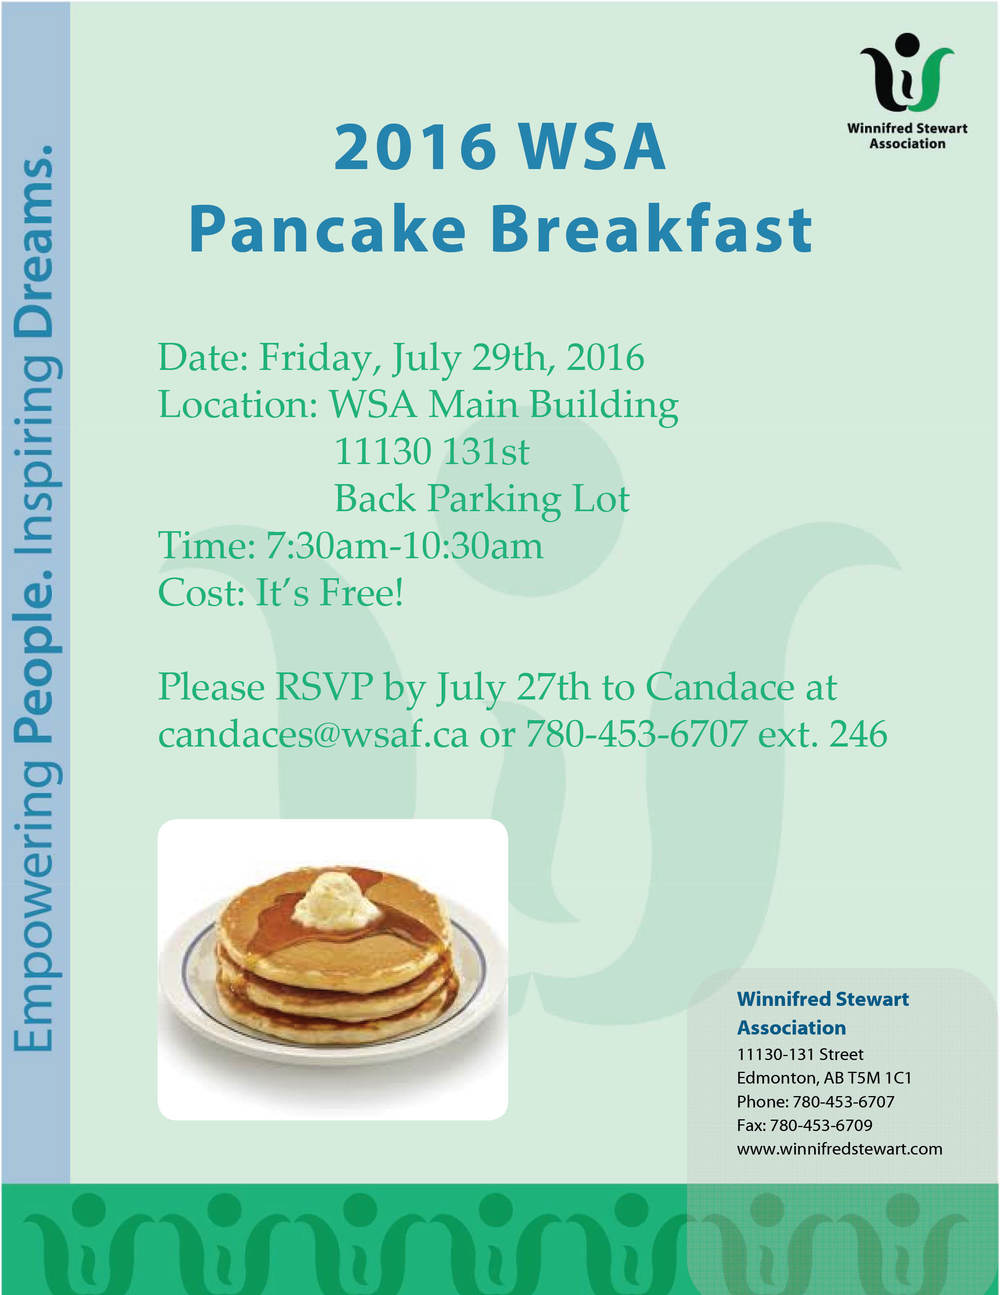 Pancake Breakfast Invite